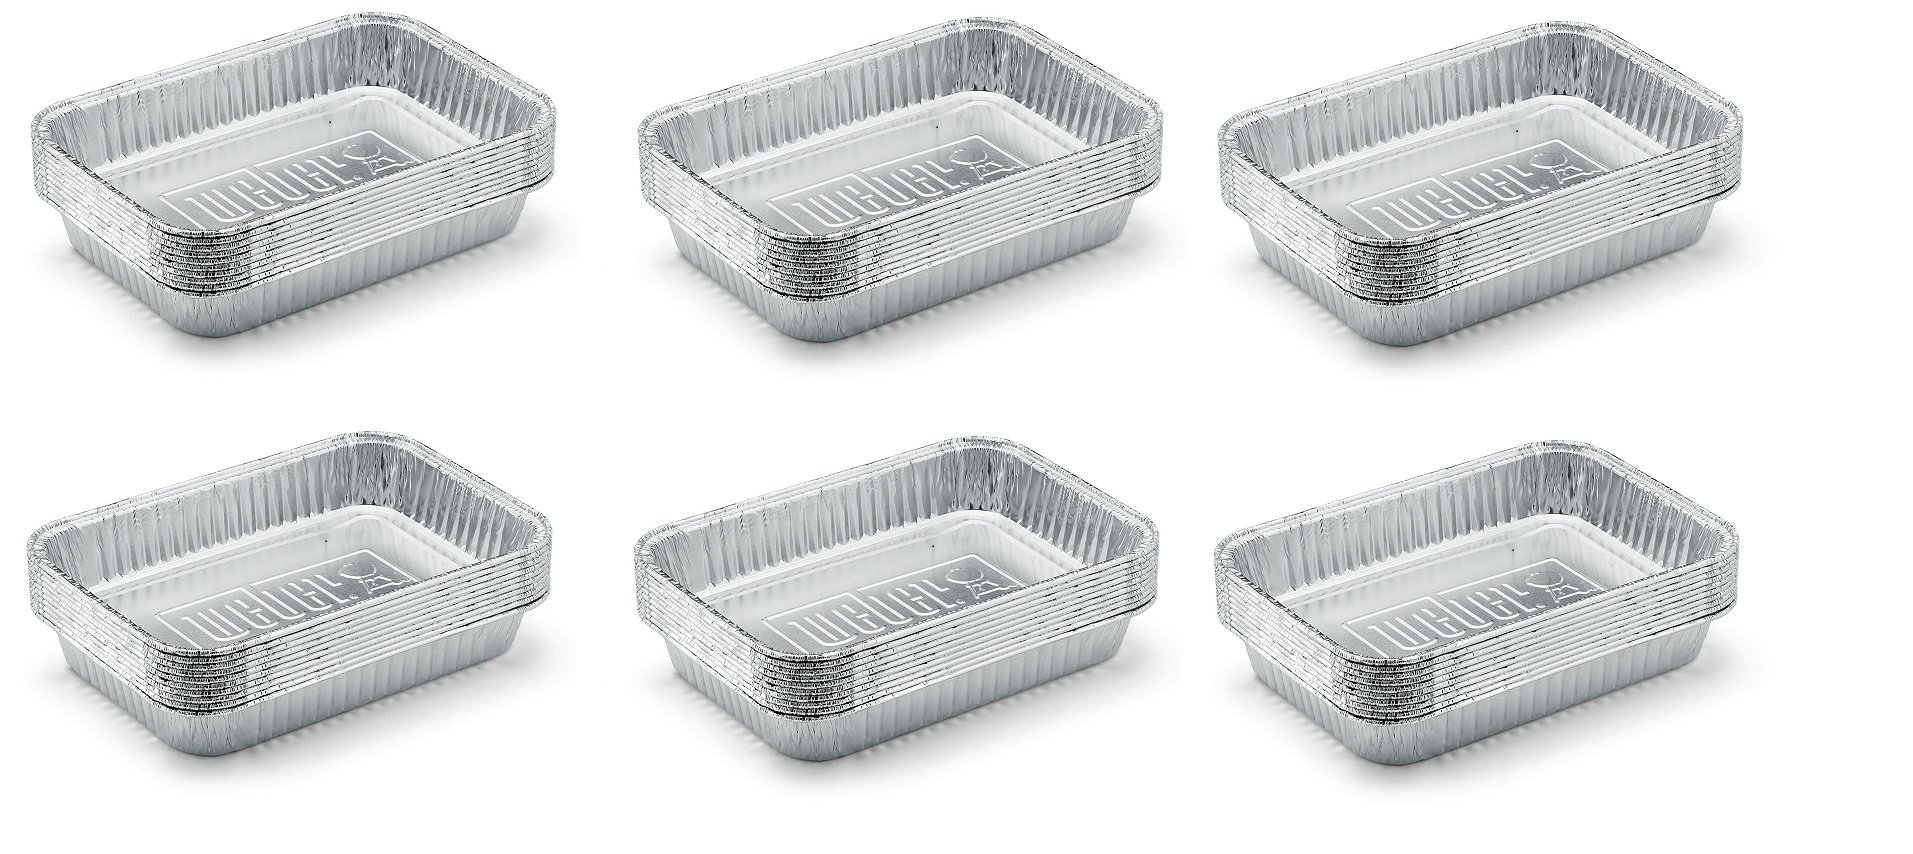 Weber 6415 Small 7-1/2-Inch-by-5-inch Aluminum Drip Pans, Set of 10 (6-Sets of 10)